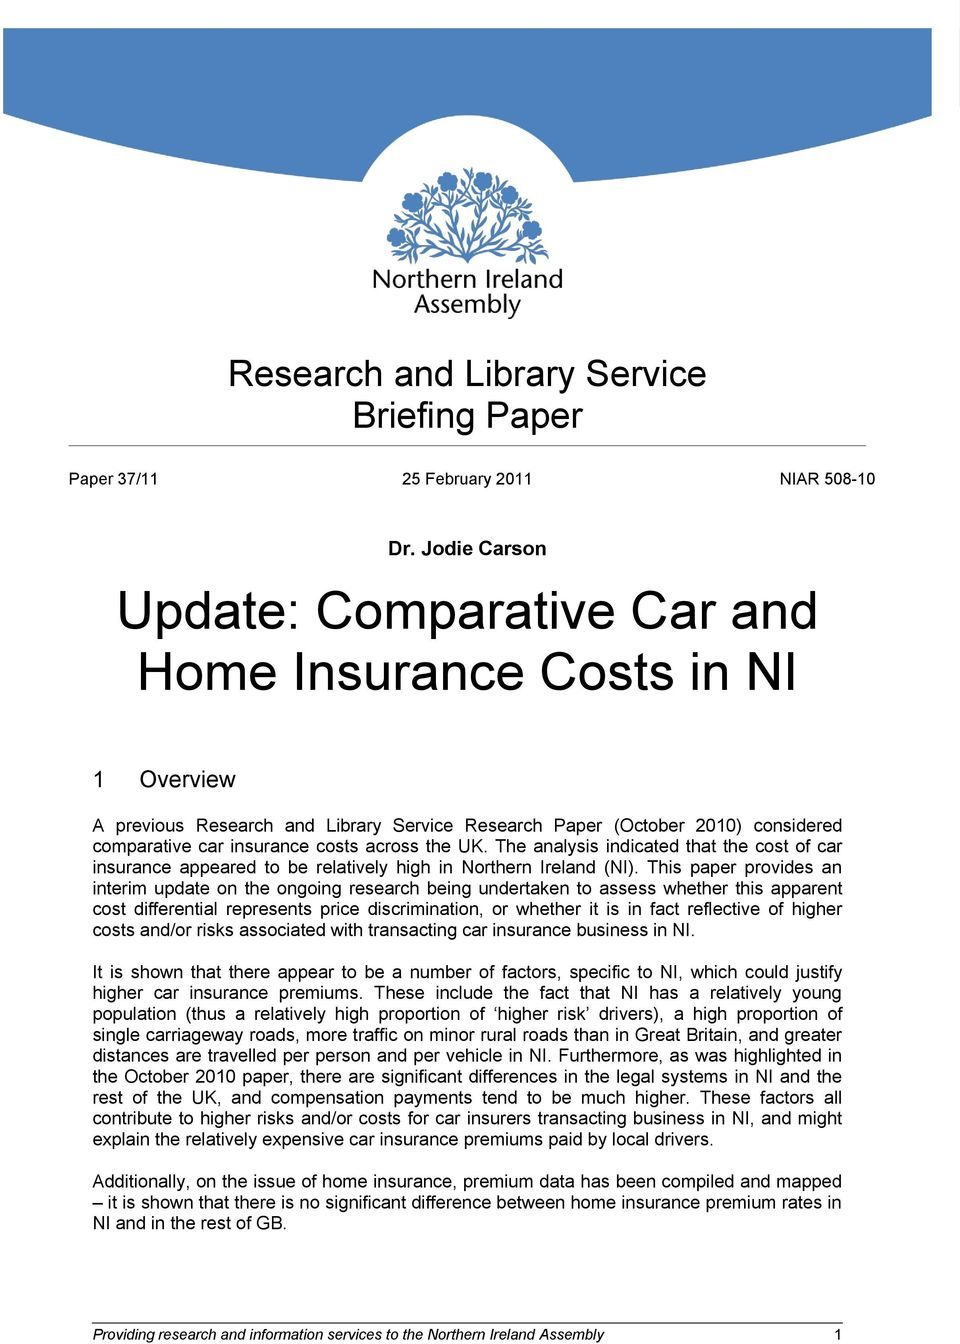 the UK. The analysis indicated that the cost of car insurance appeared to be relatively high in Northern Ireland (NI).